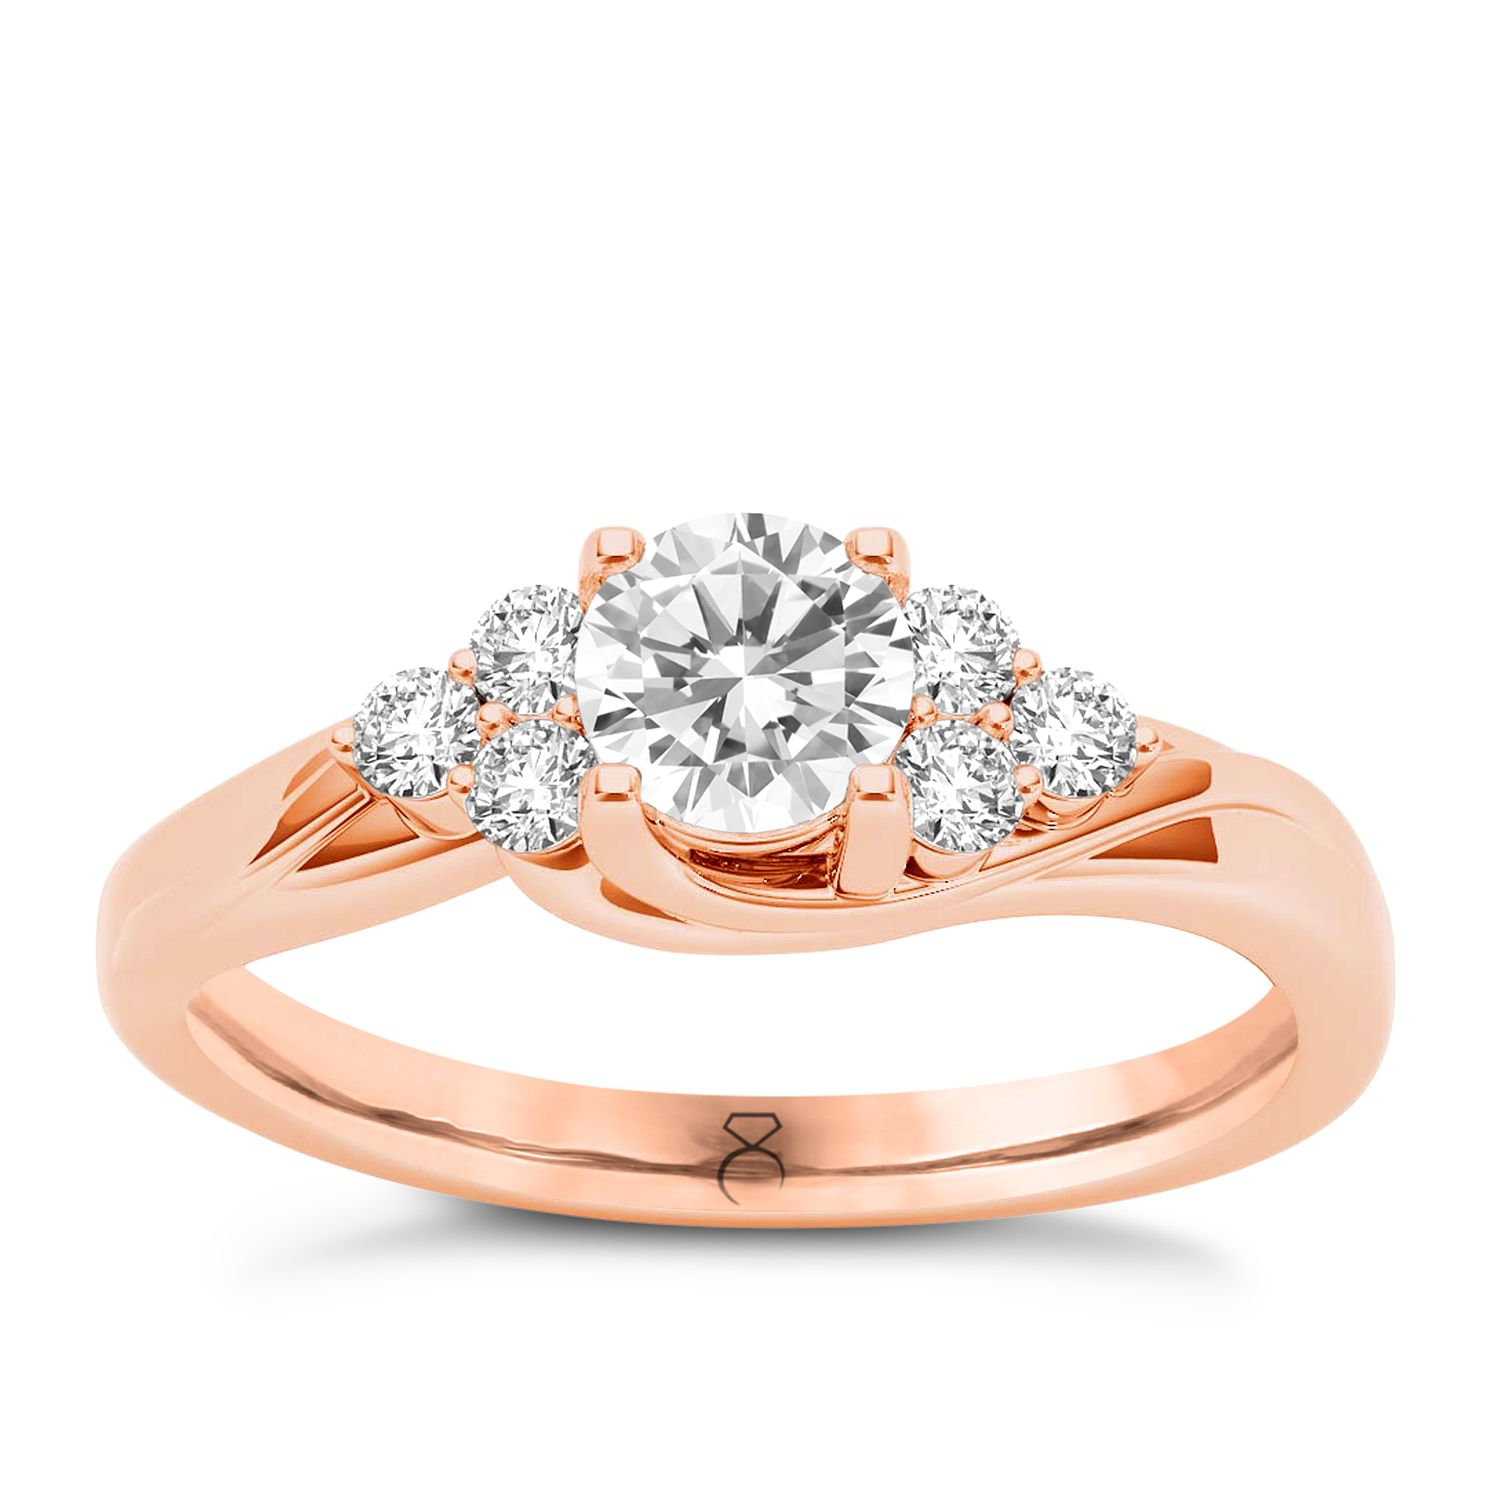 The Diamond Story 18ct Rose Gold 0.50ct Total Diamond Ring - Product number 6937322